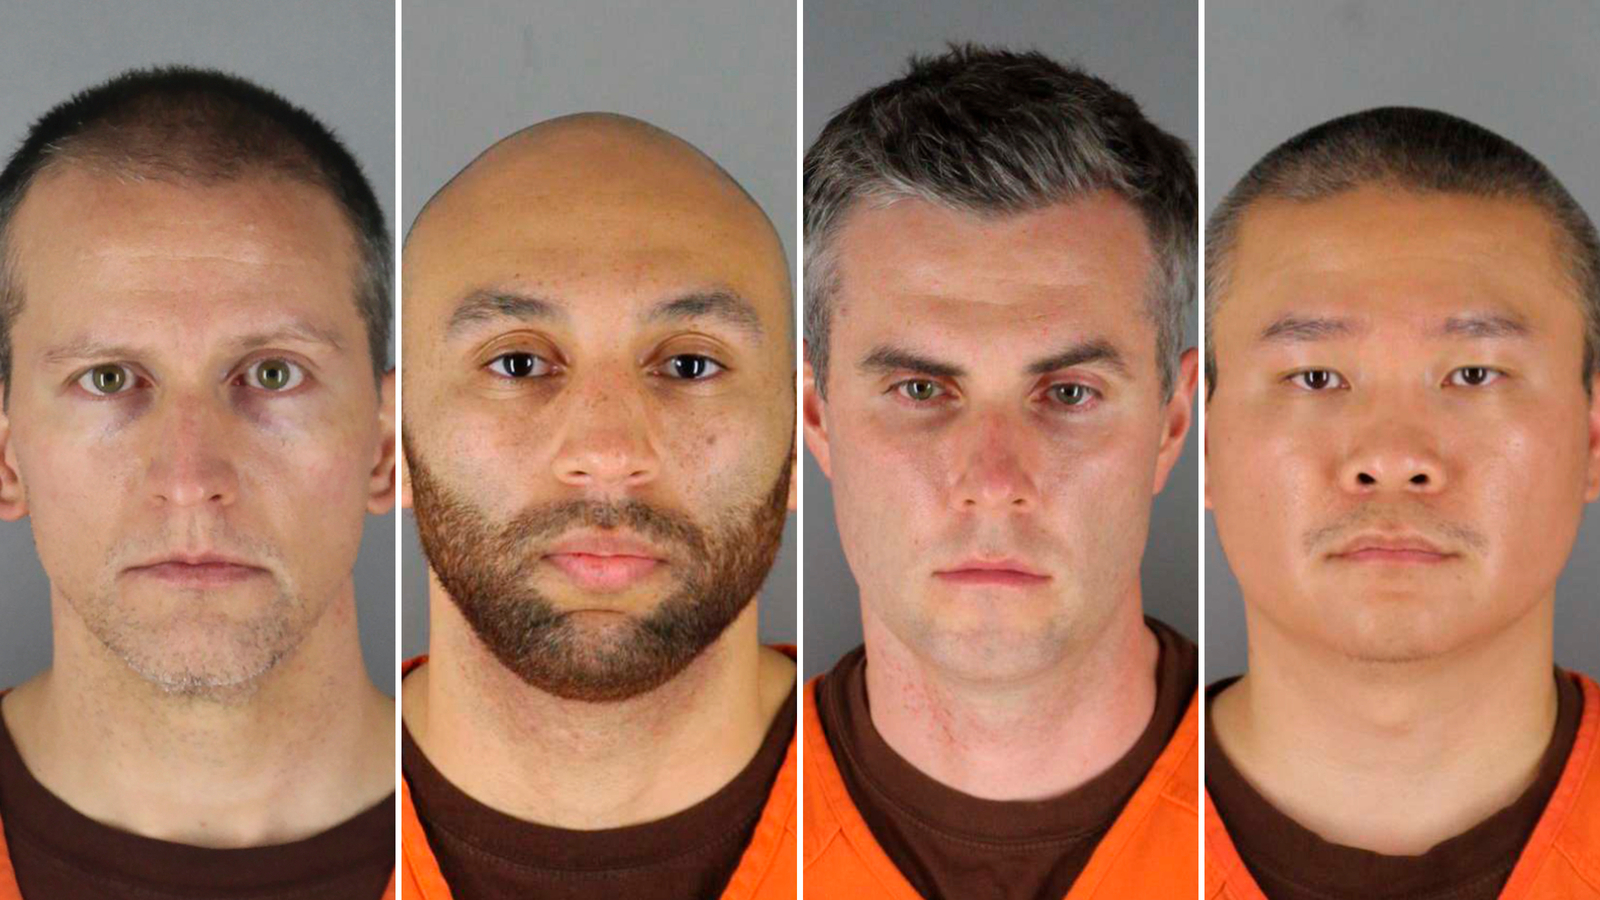 Derek Chauvin, J. Alexander Kueng, Thomas Lane and Tou Thao face charges in the death of George Floyd.